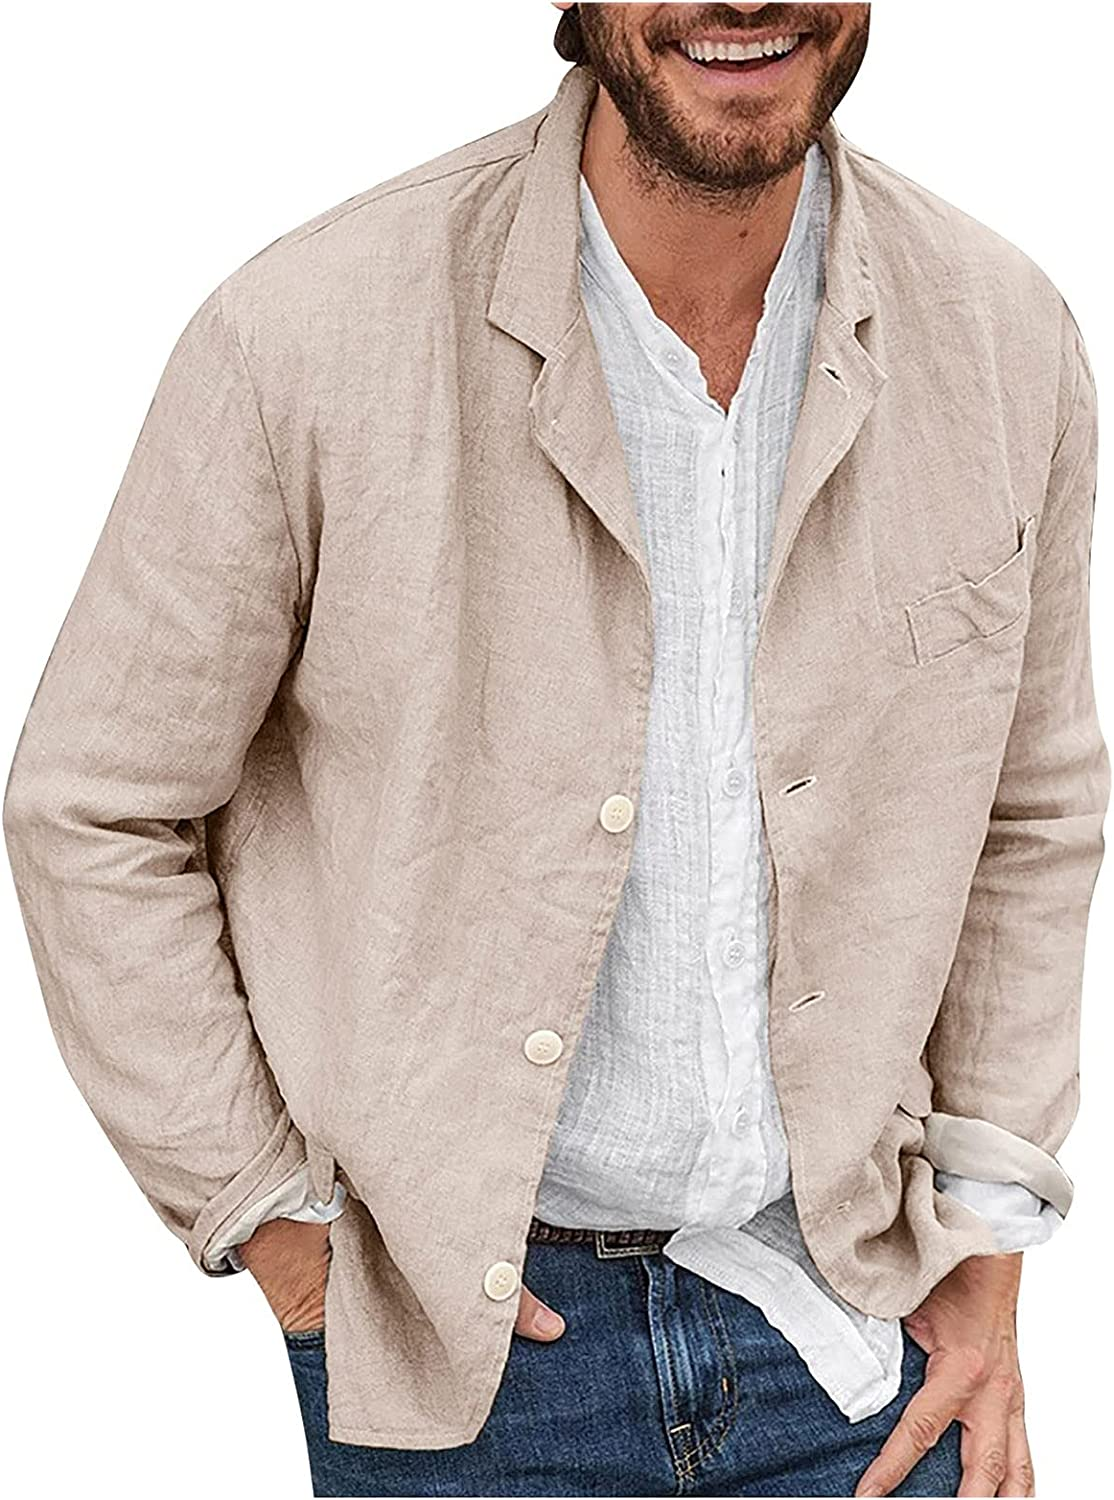 WOCACHI Cotton Linen Shirts for Mens, Button Down Lapel Casual Tops Lightweight Outerwear Shirt with Front Pocket